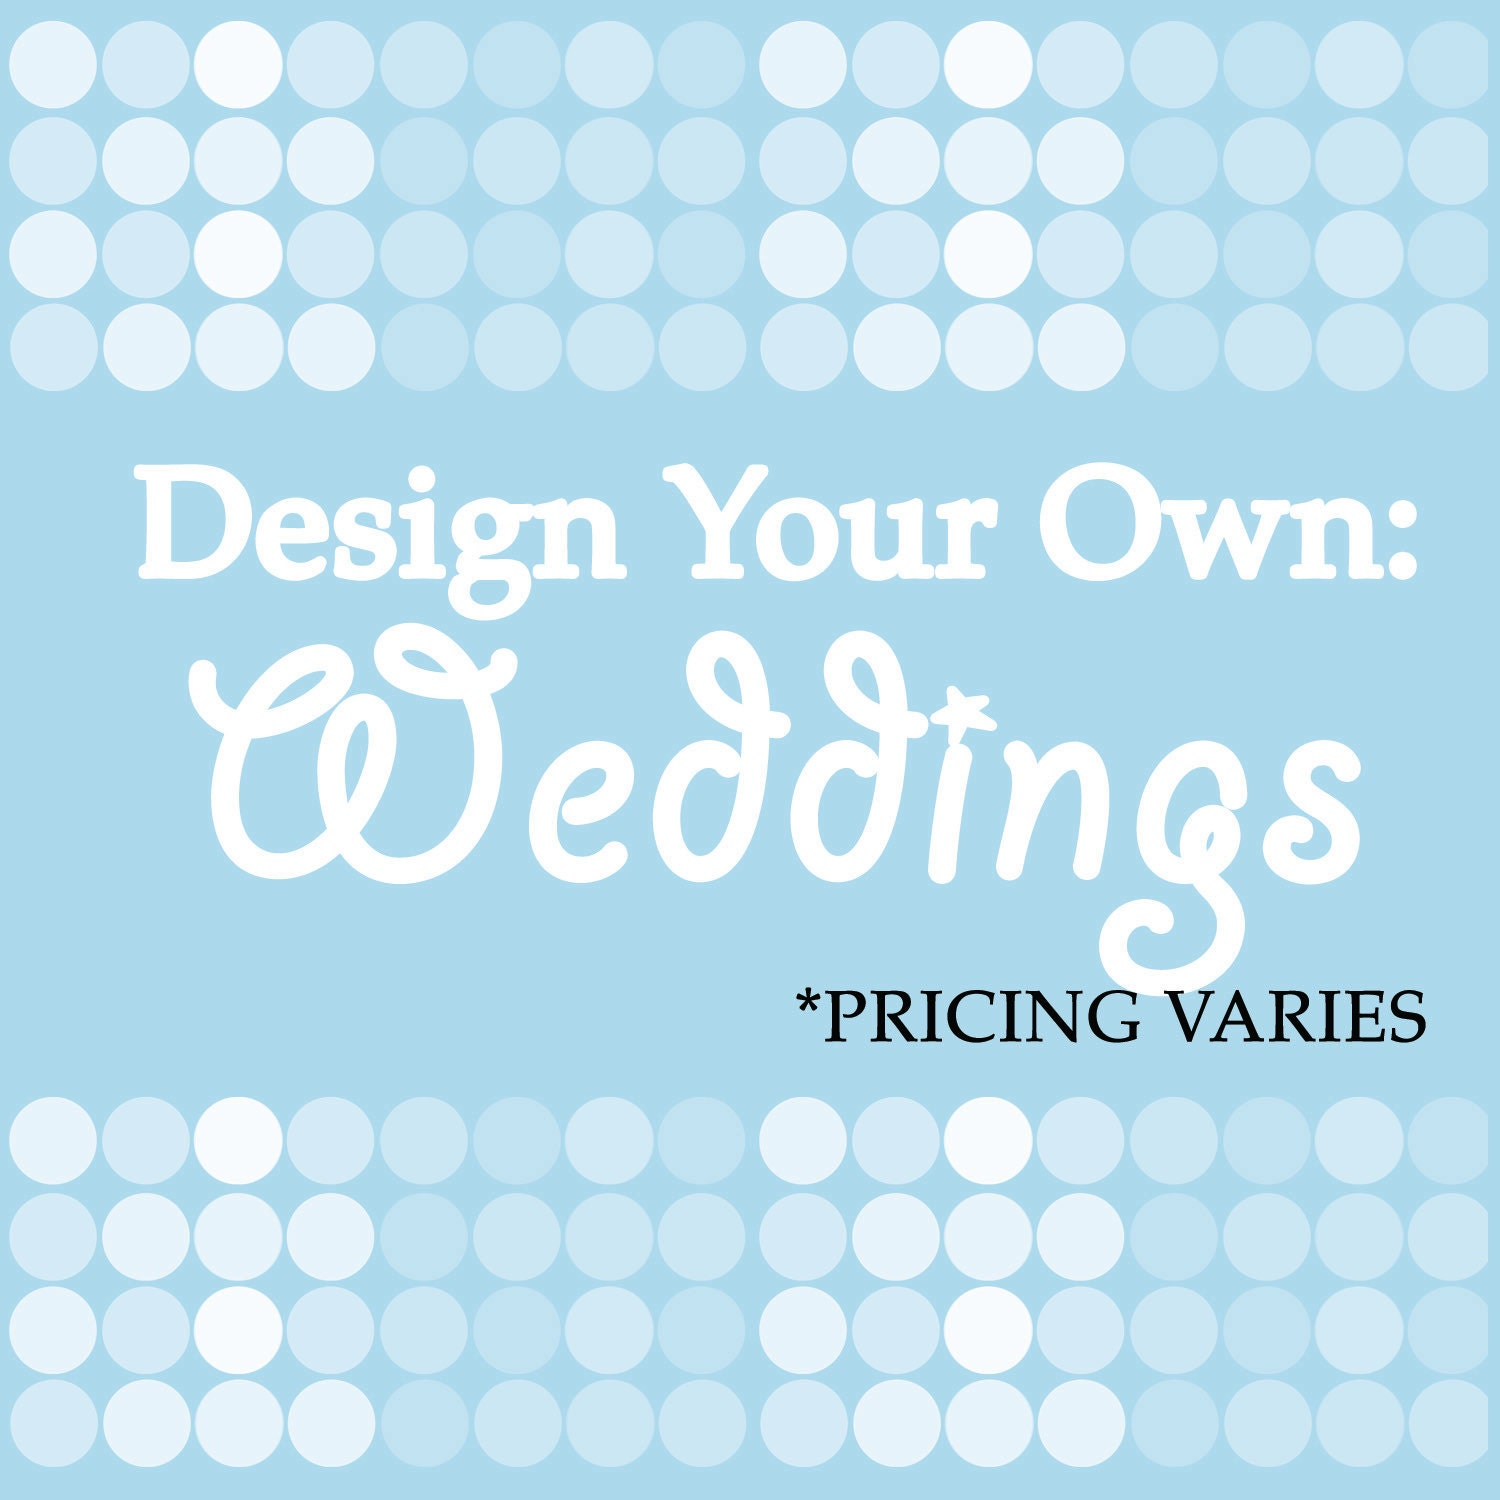 Design Your Own Cake Stencil : Items similar to DESIGN YOUR OWN: Wedding Cake Toppers on Etsy